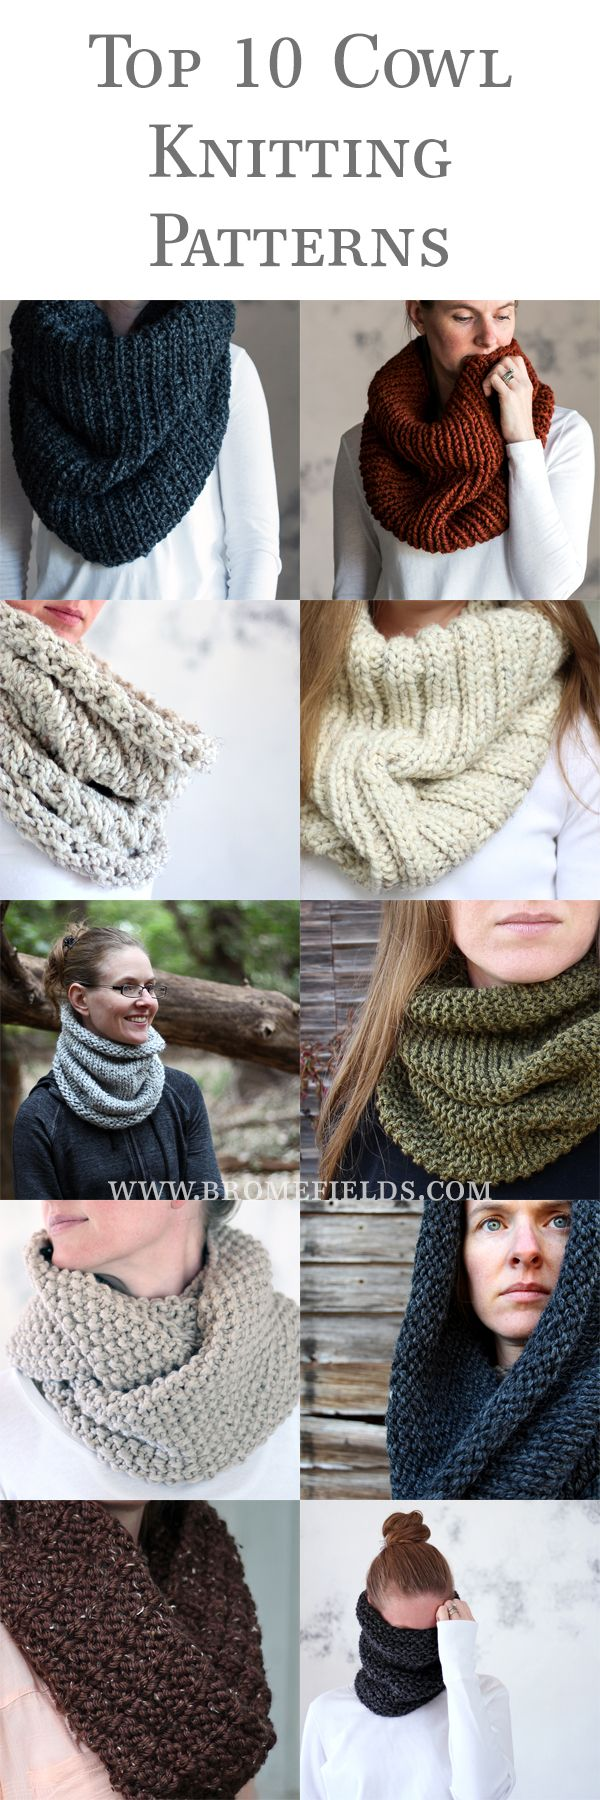 Top 10 Cowl Knitting Patterns by Brome Fields | Pretty Knitting ...